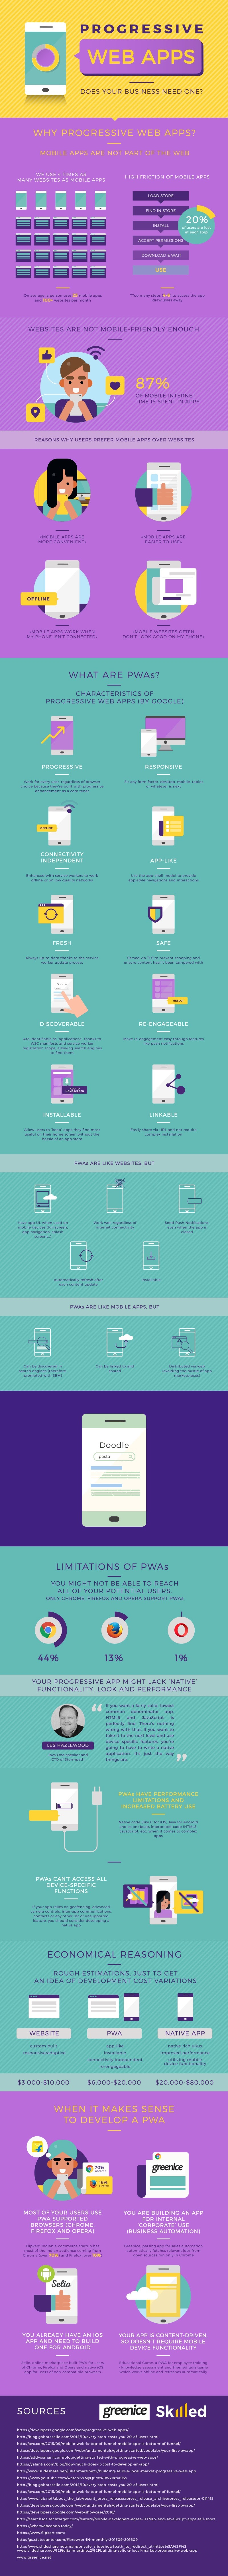 Progressive Web Apps Does Your Business Need One? #infographic